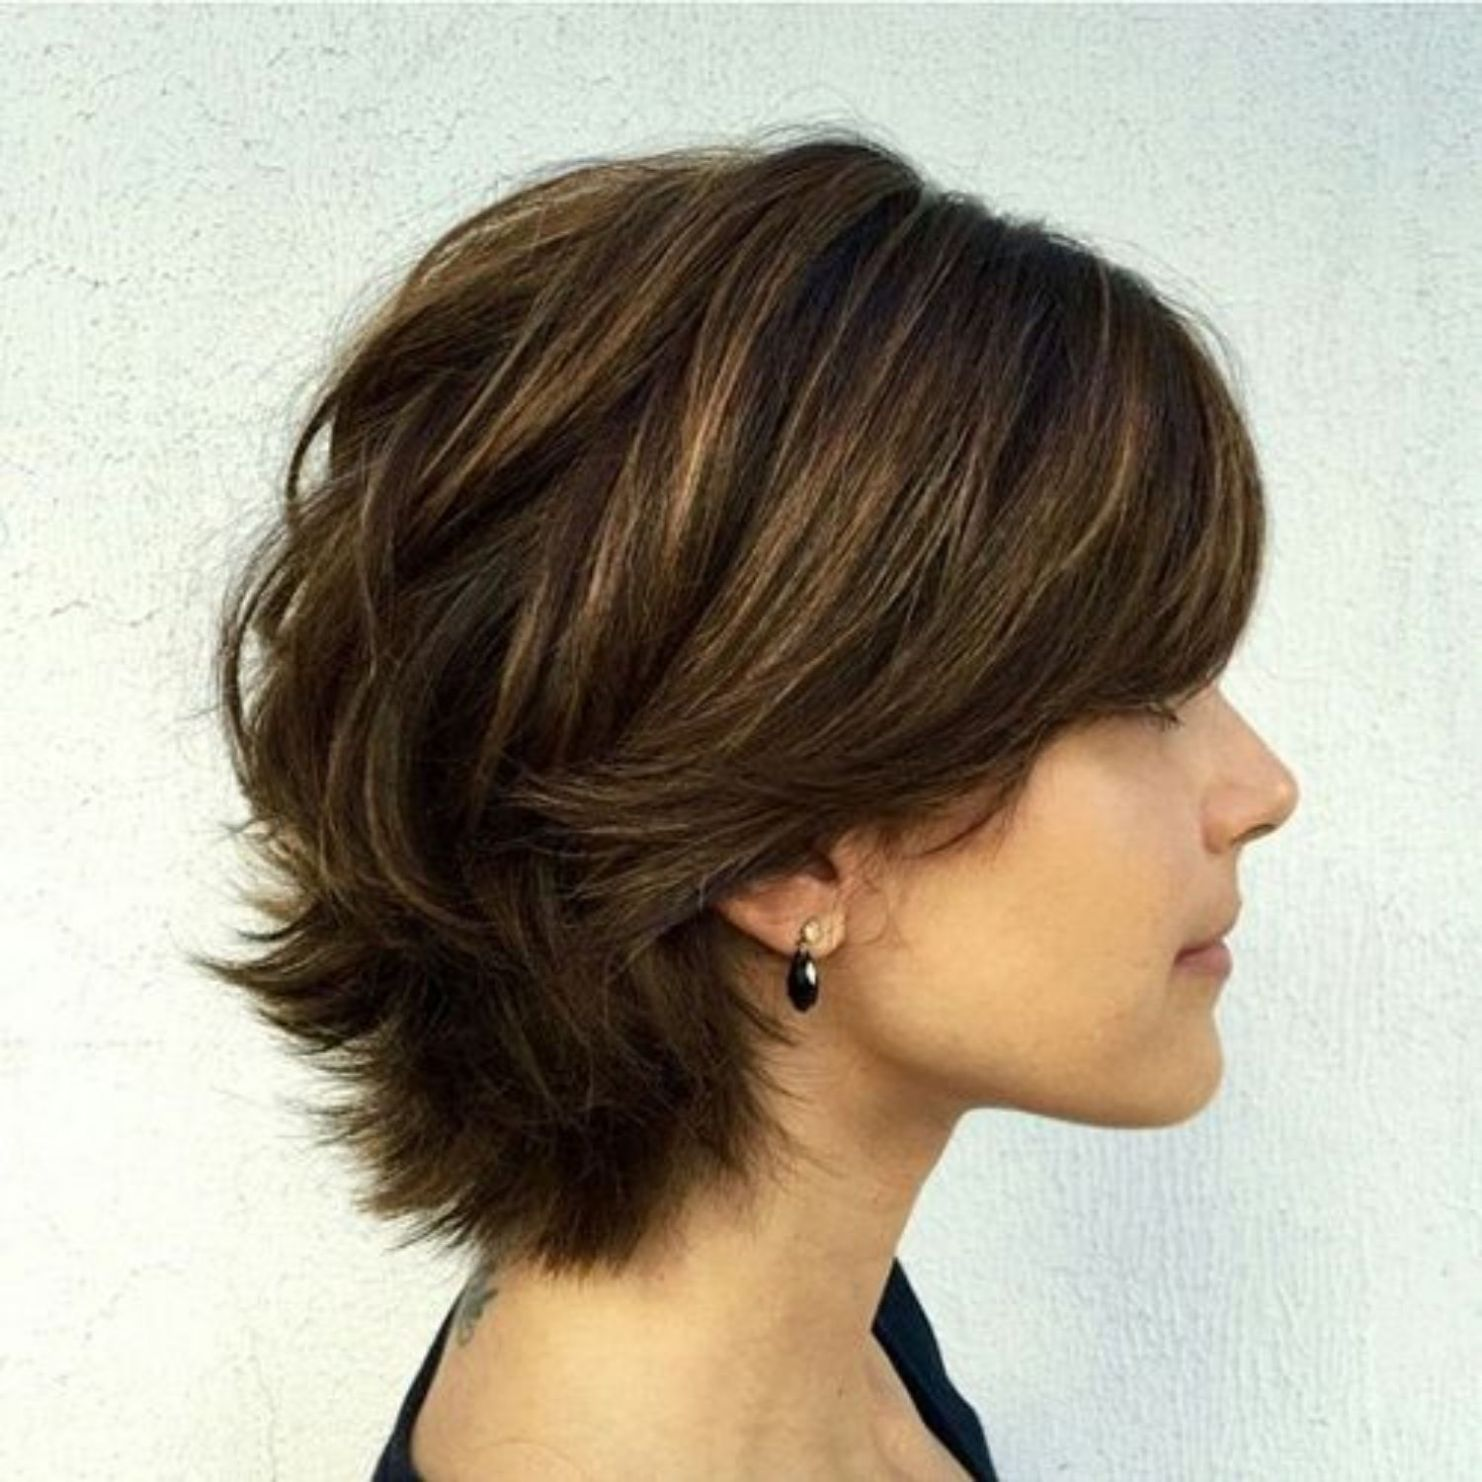 60 Classy Short Haircuts And Hairstyles For Thick Hair Thick Hair Styles Short Hairstyles For Thick Hair Short Hair With Layers